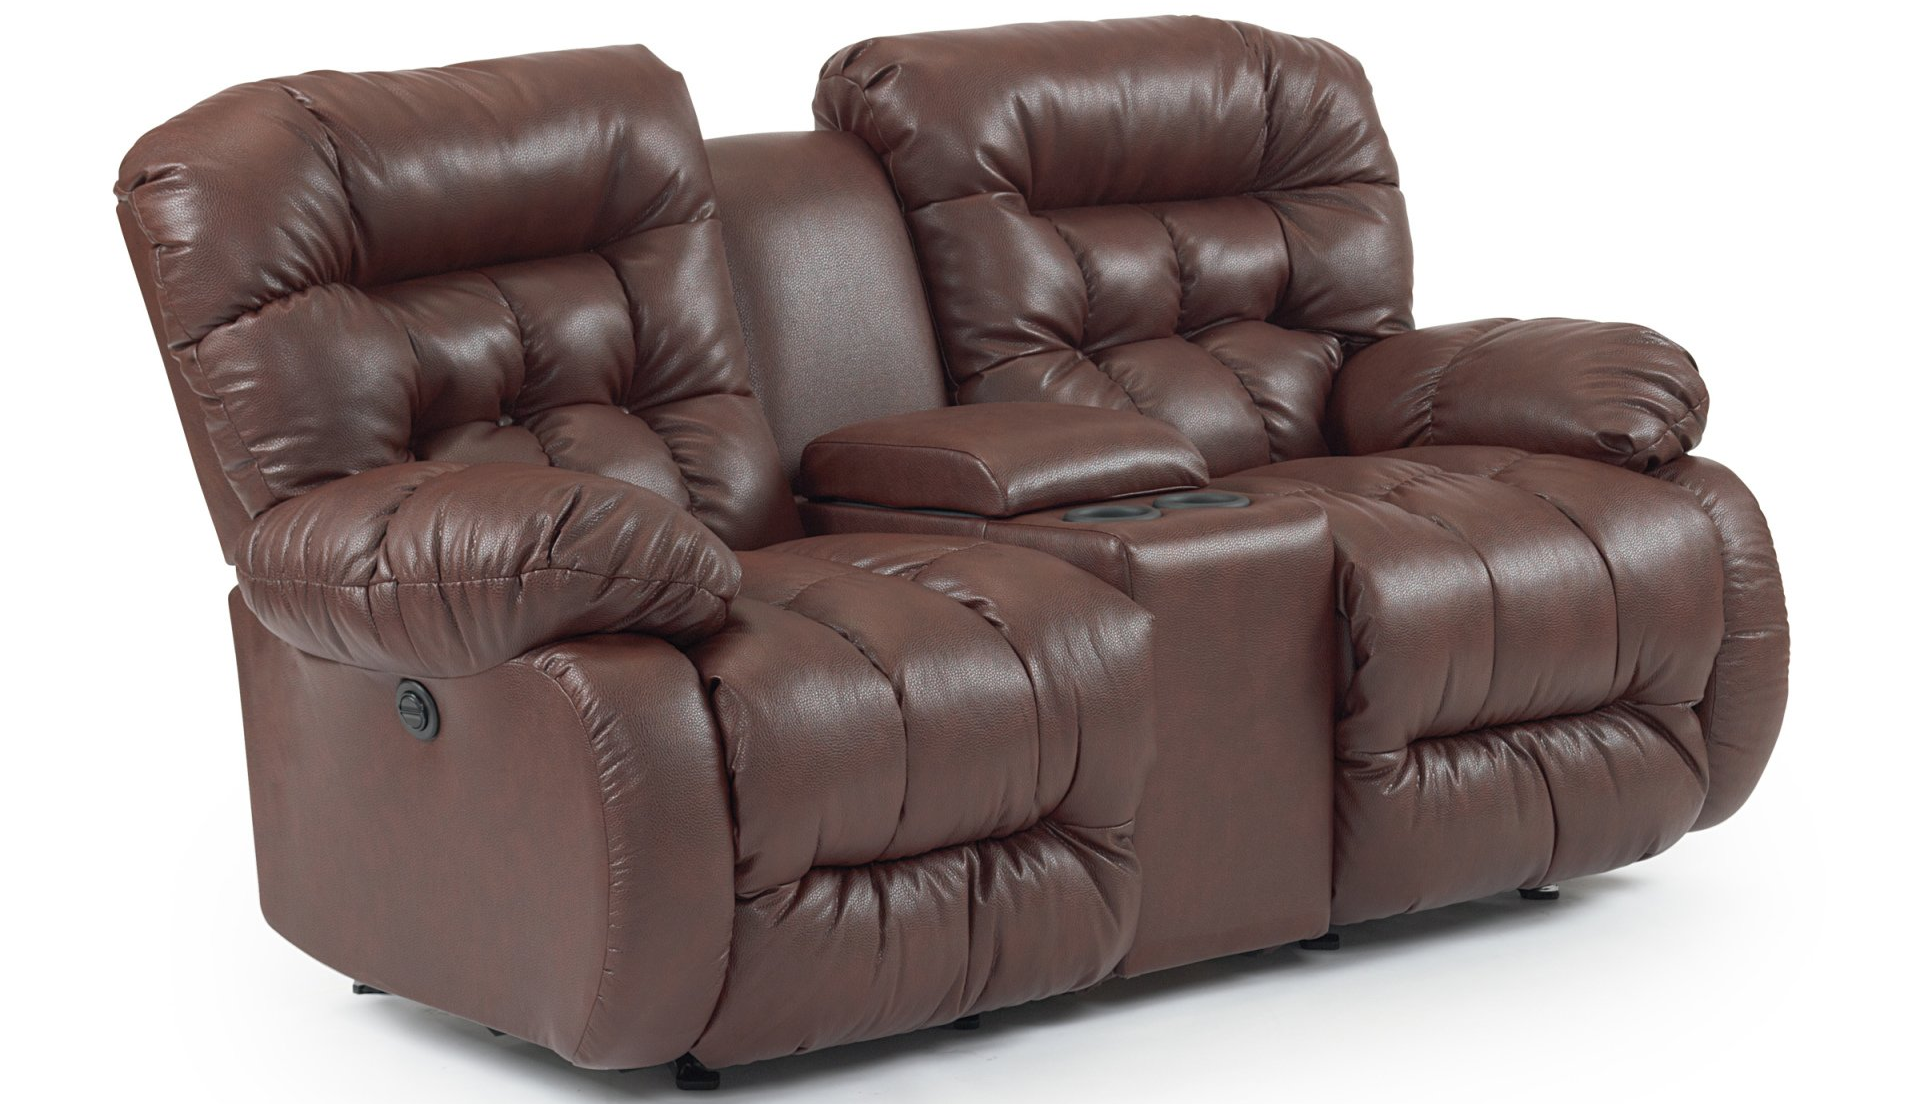 These Two Armchairs Look Really Great I Love The Leather Design And It S Great That They Are Both E Goods Home Furnishings Furniture Power Reclining Loveseat